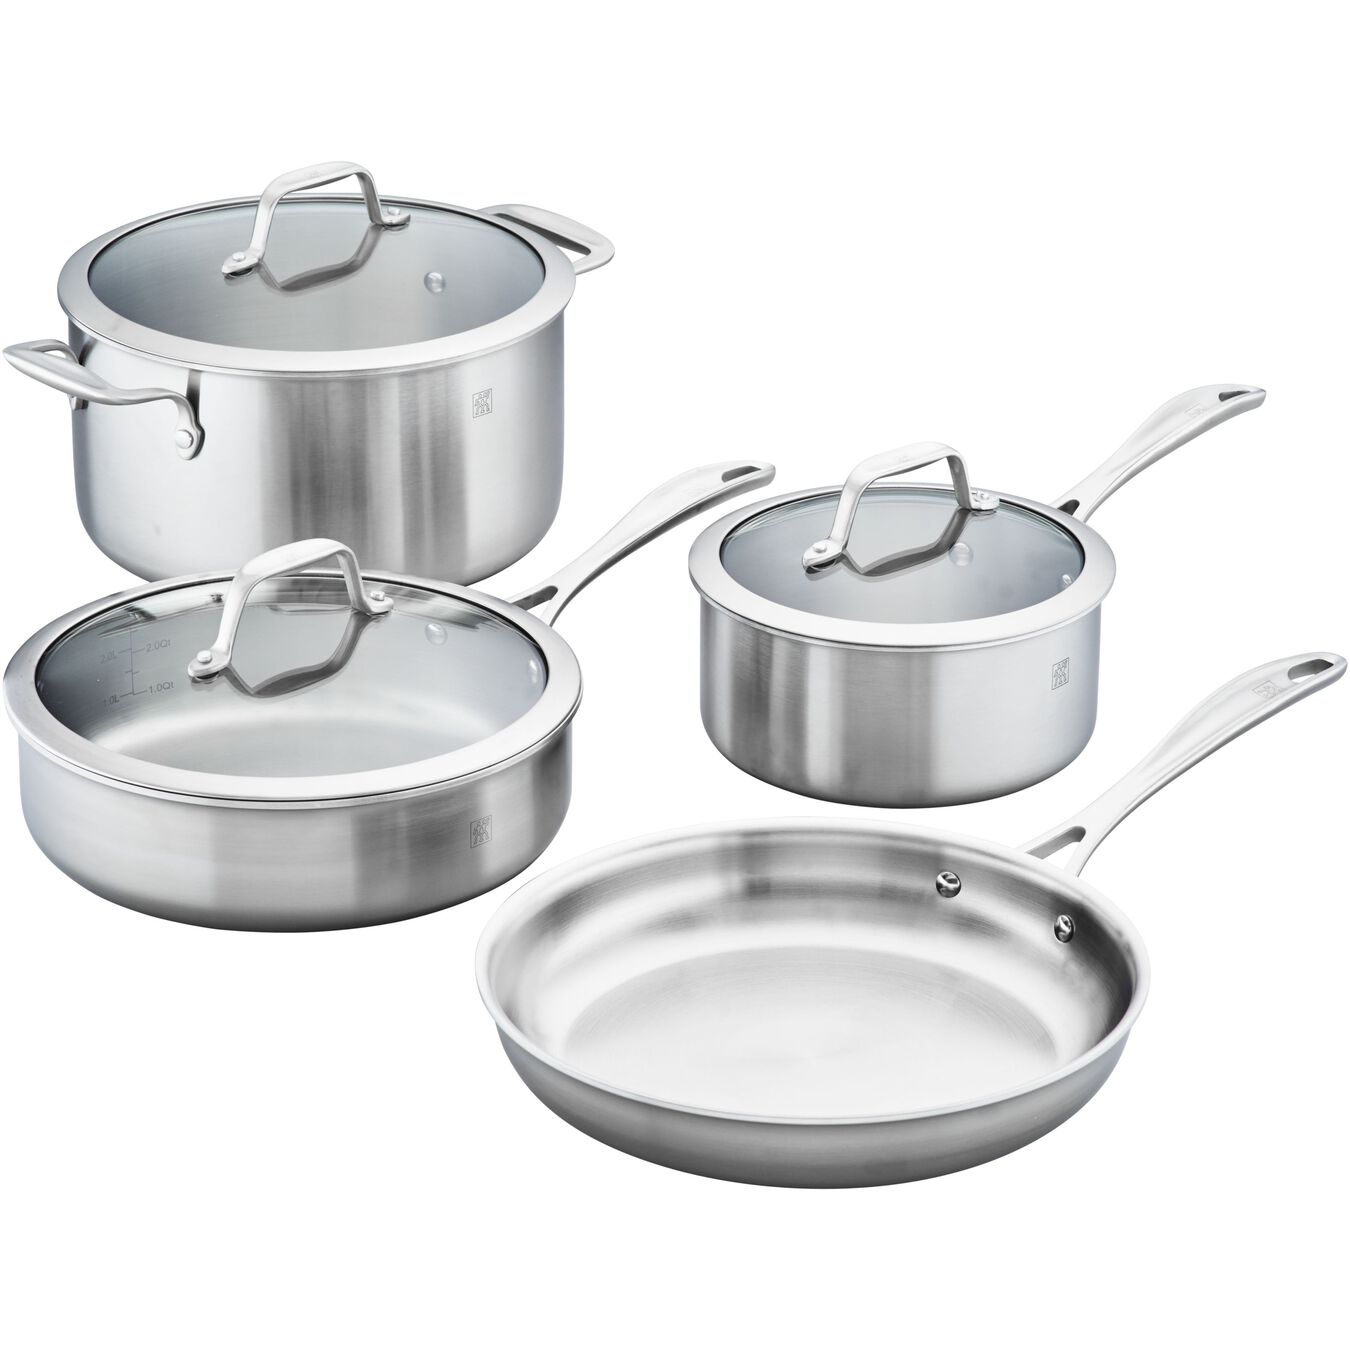 3-ply 7-pc Stainless Steel Cookware Set,,large 1